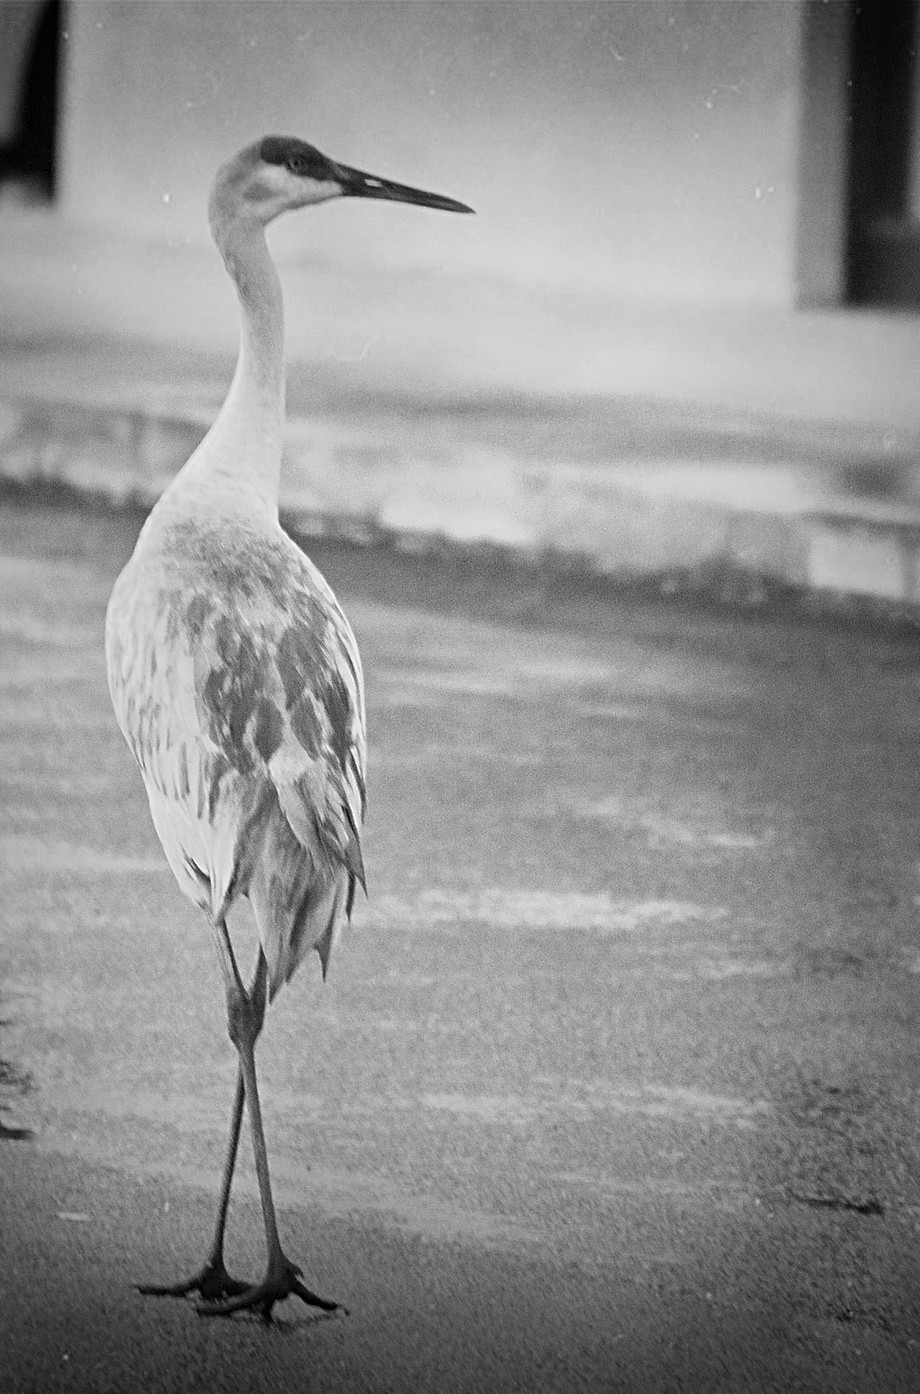 Black and White Florida Bird